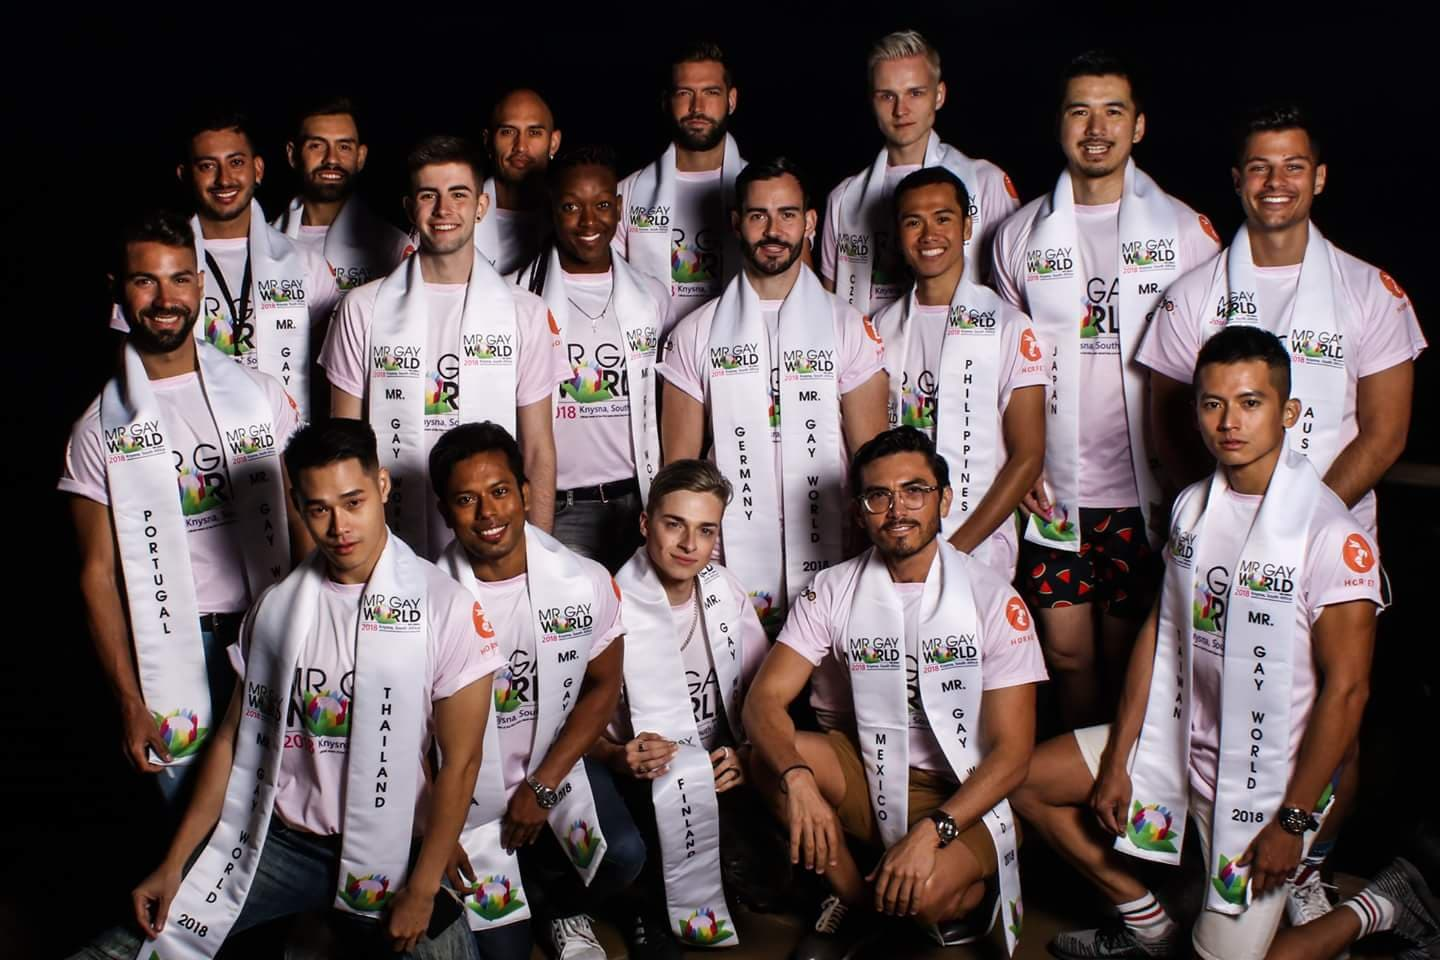 mr. gay world 2018 winner contestants